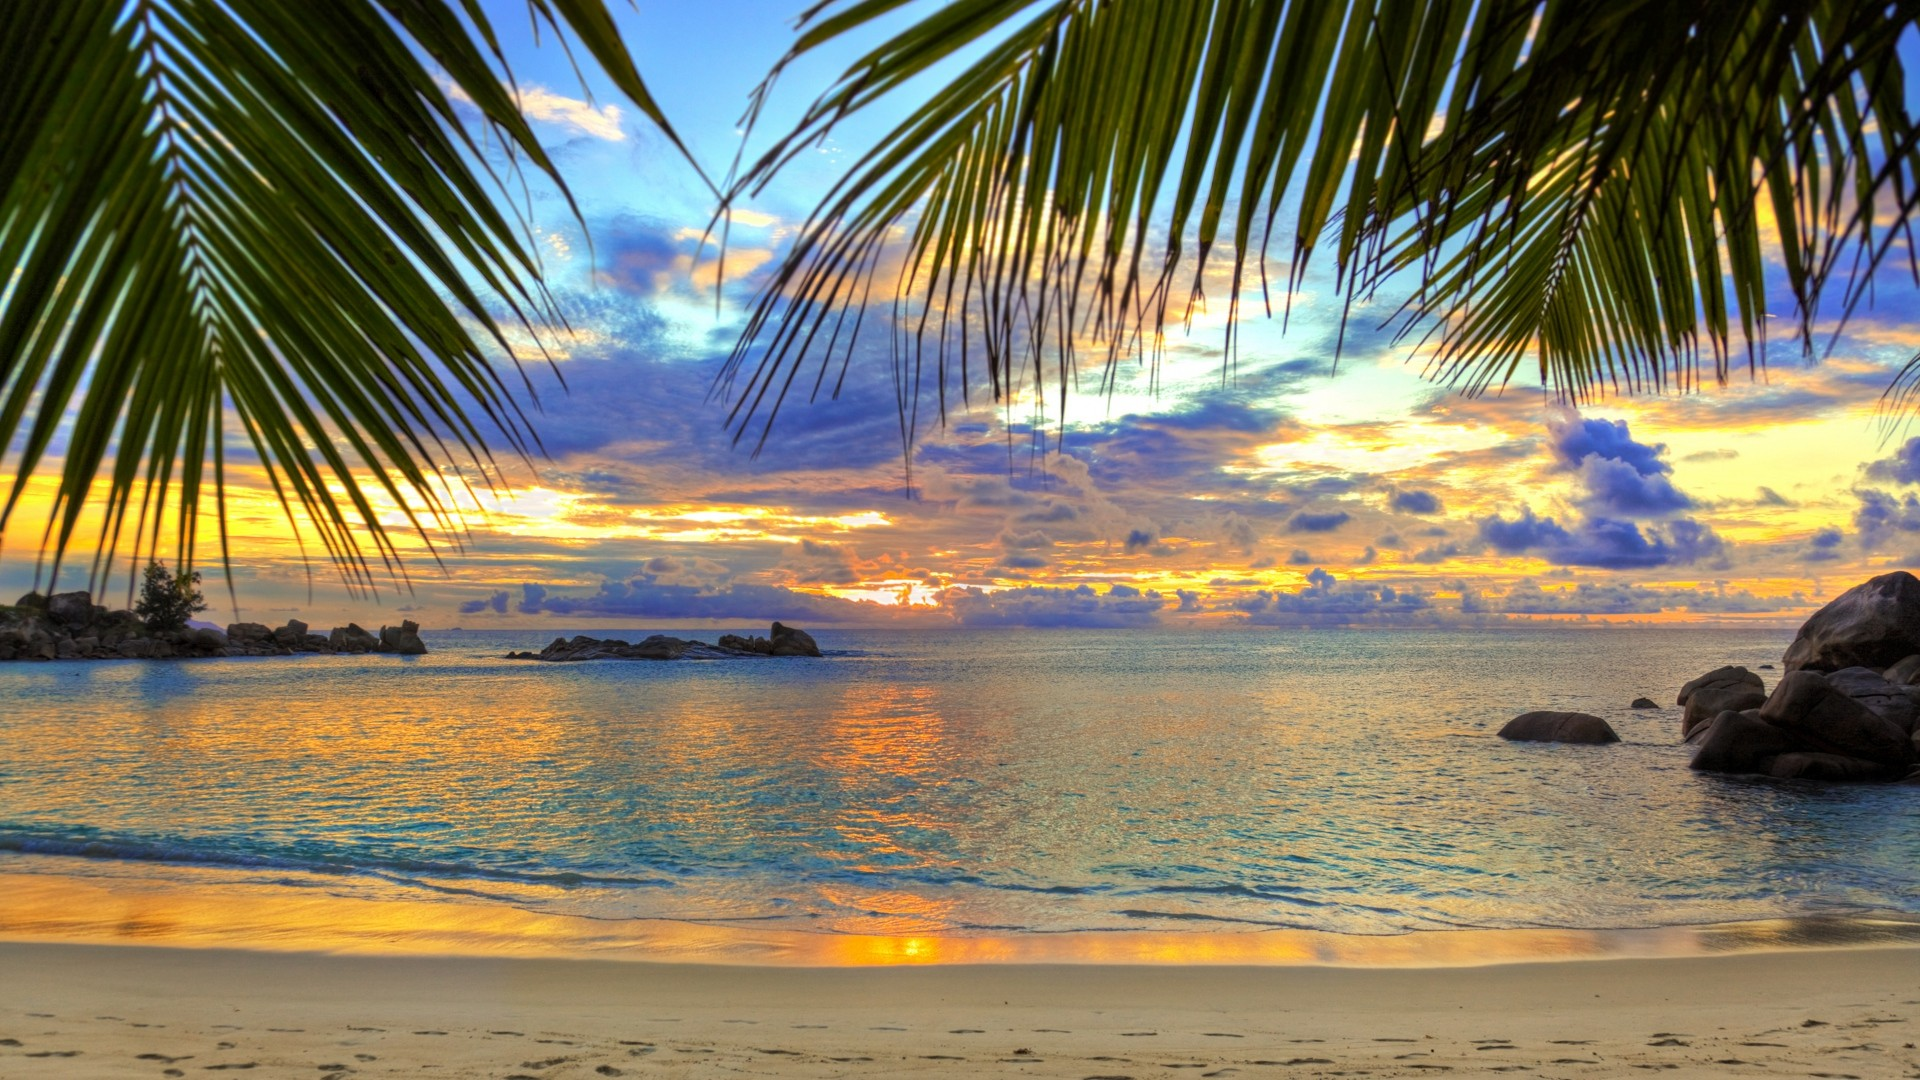 Preview wallpaper beach, tropics, sea, sand, palm trees 1920×1080